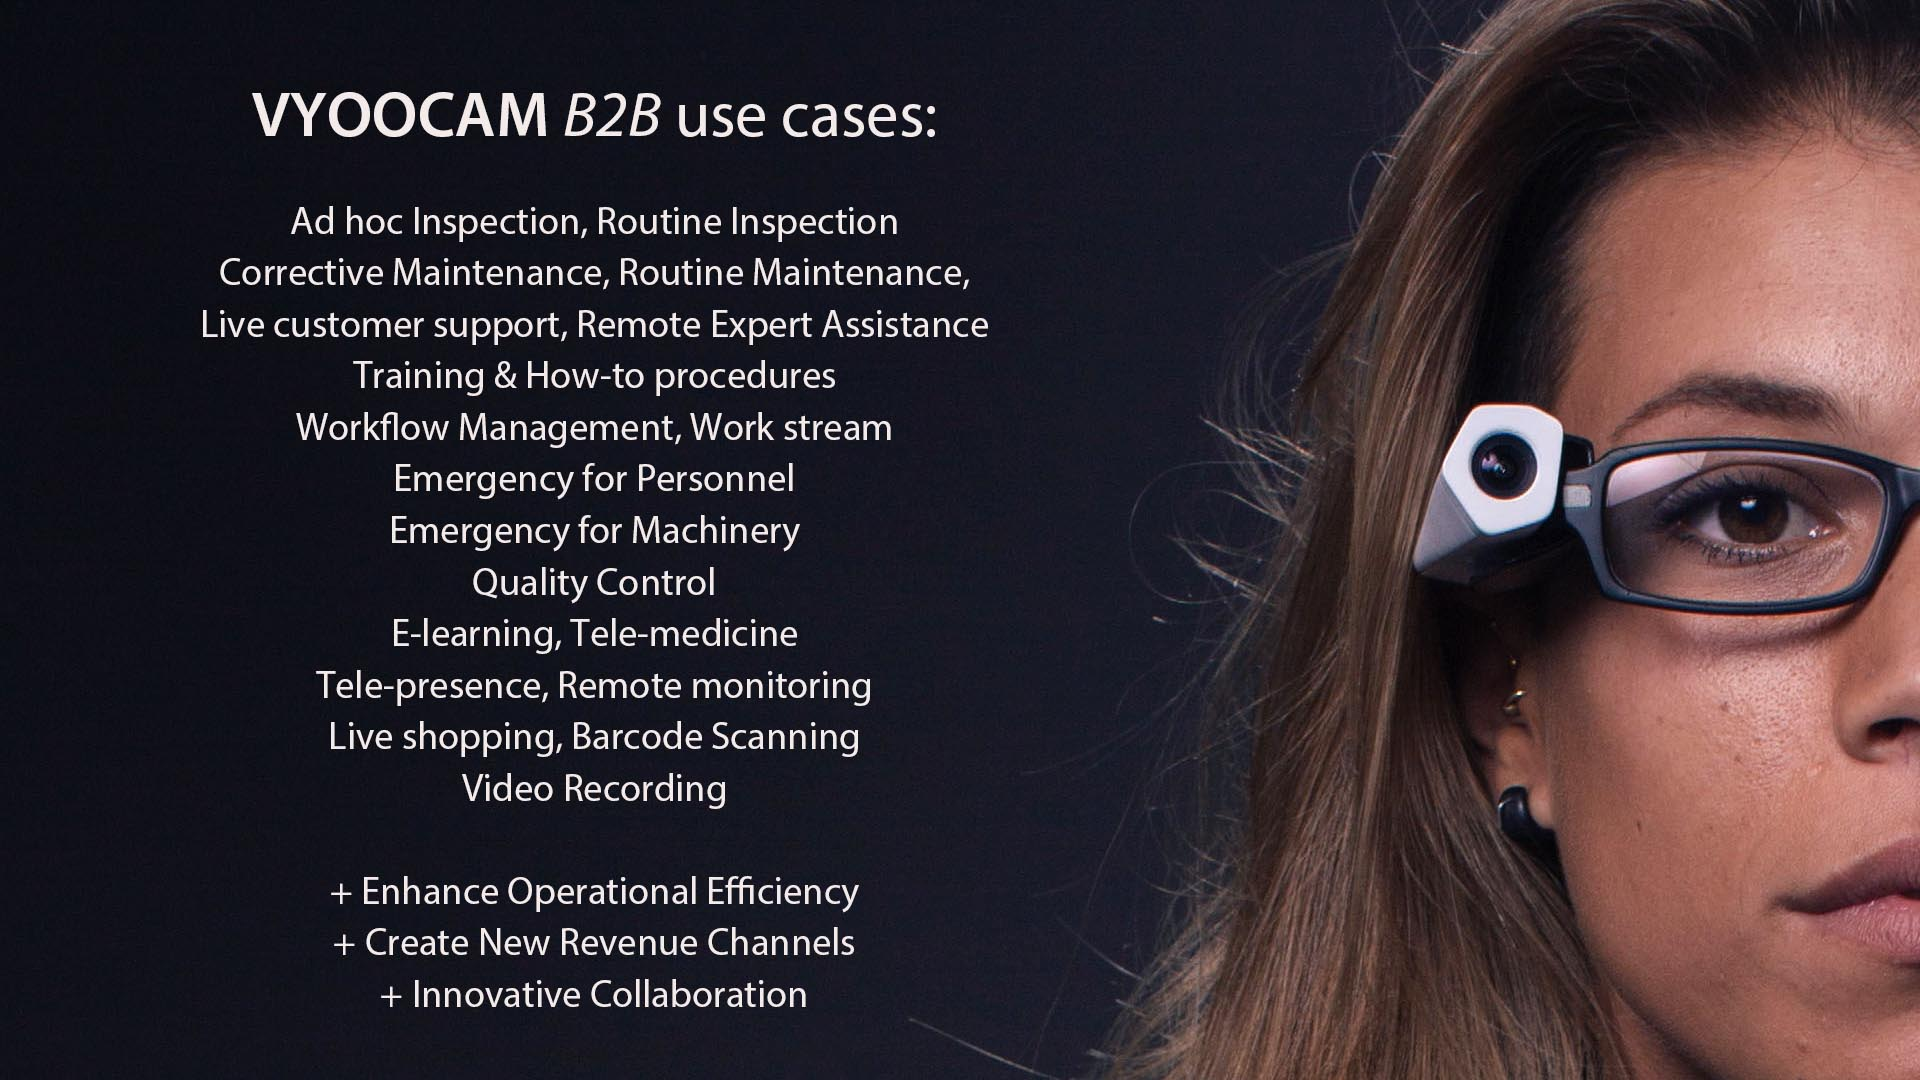 vyoocam-use-cases